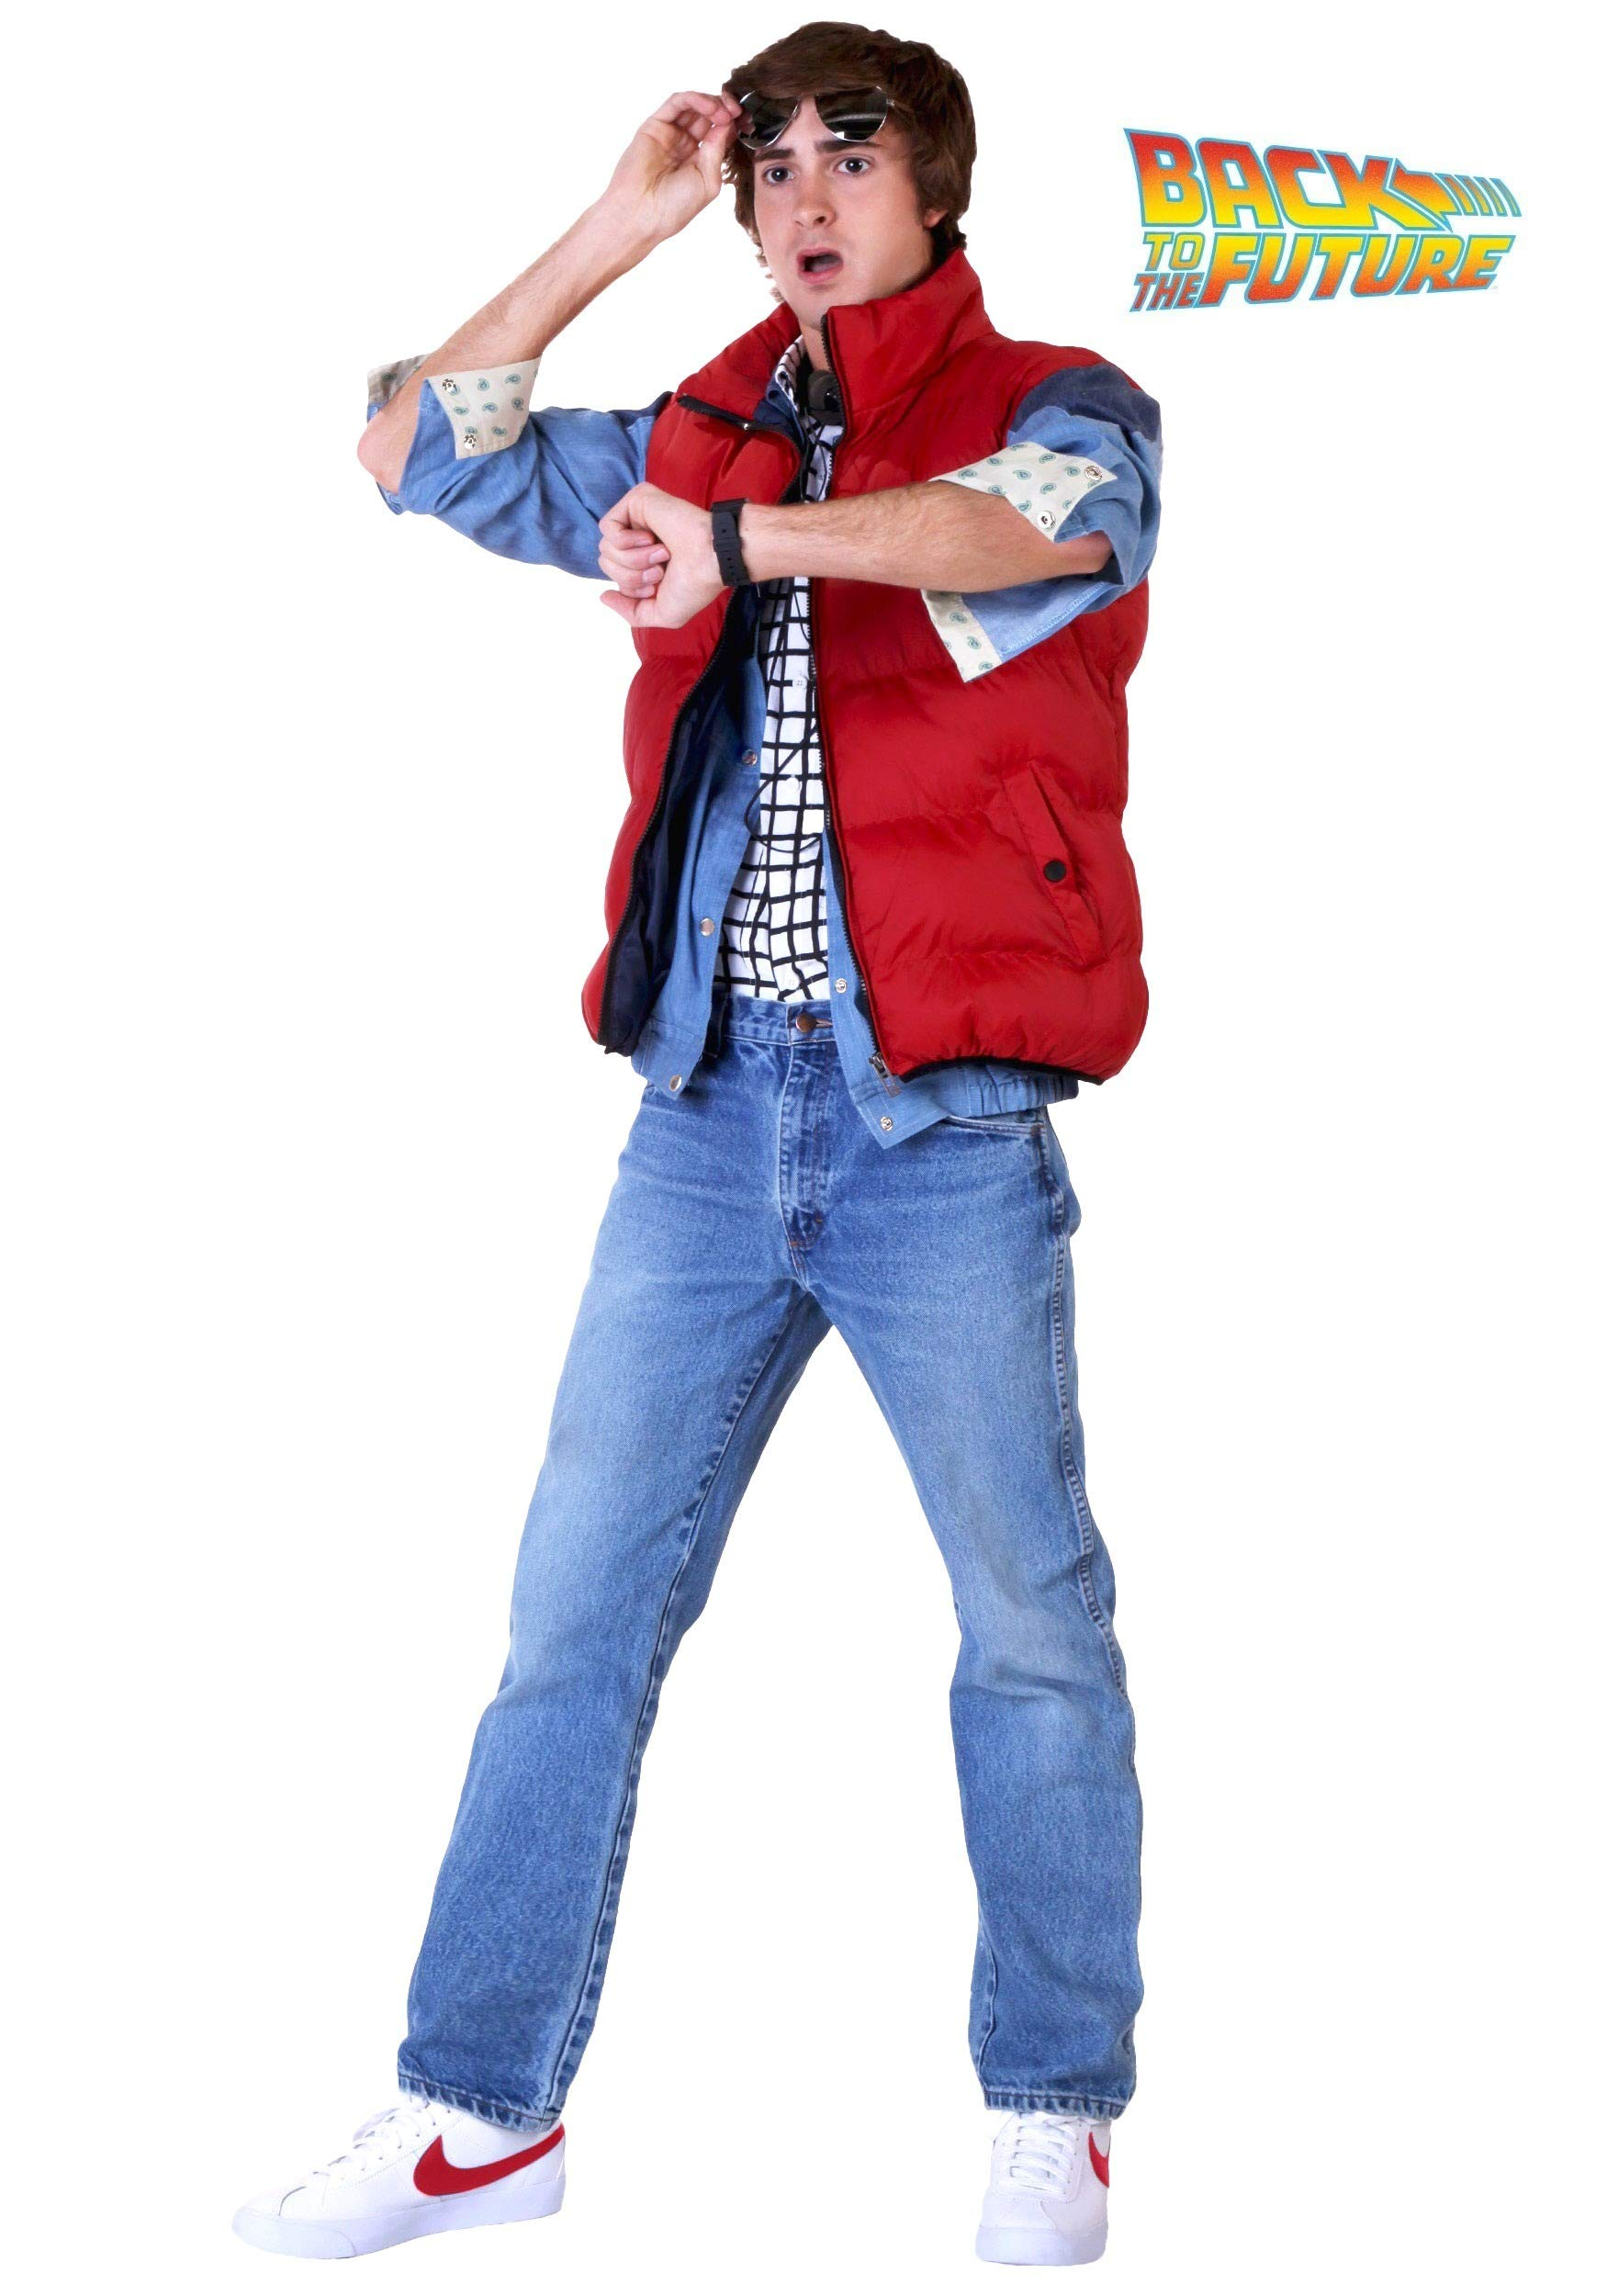 Back-to-The-Future-Marty-McFly-Fancy-Dress-Costume